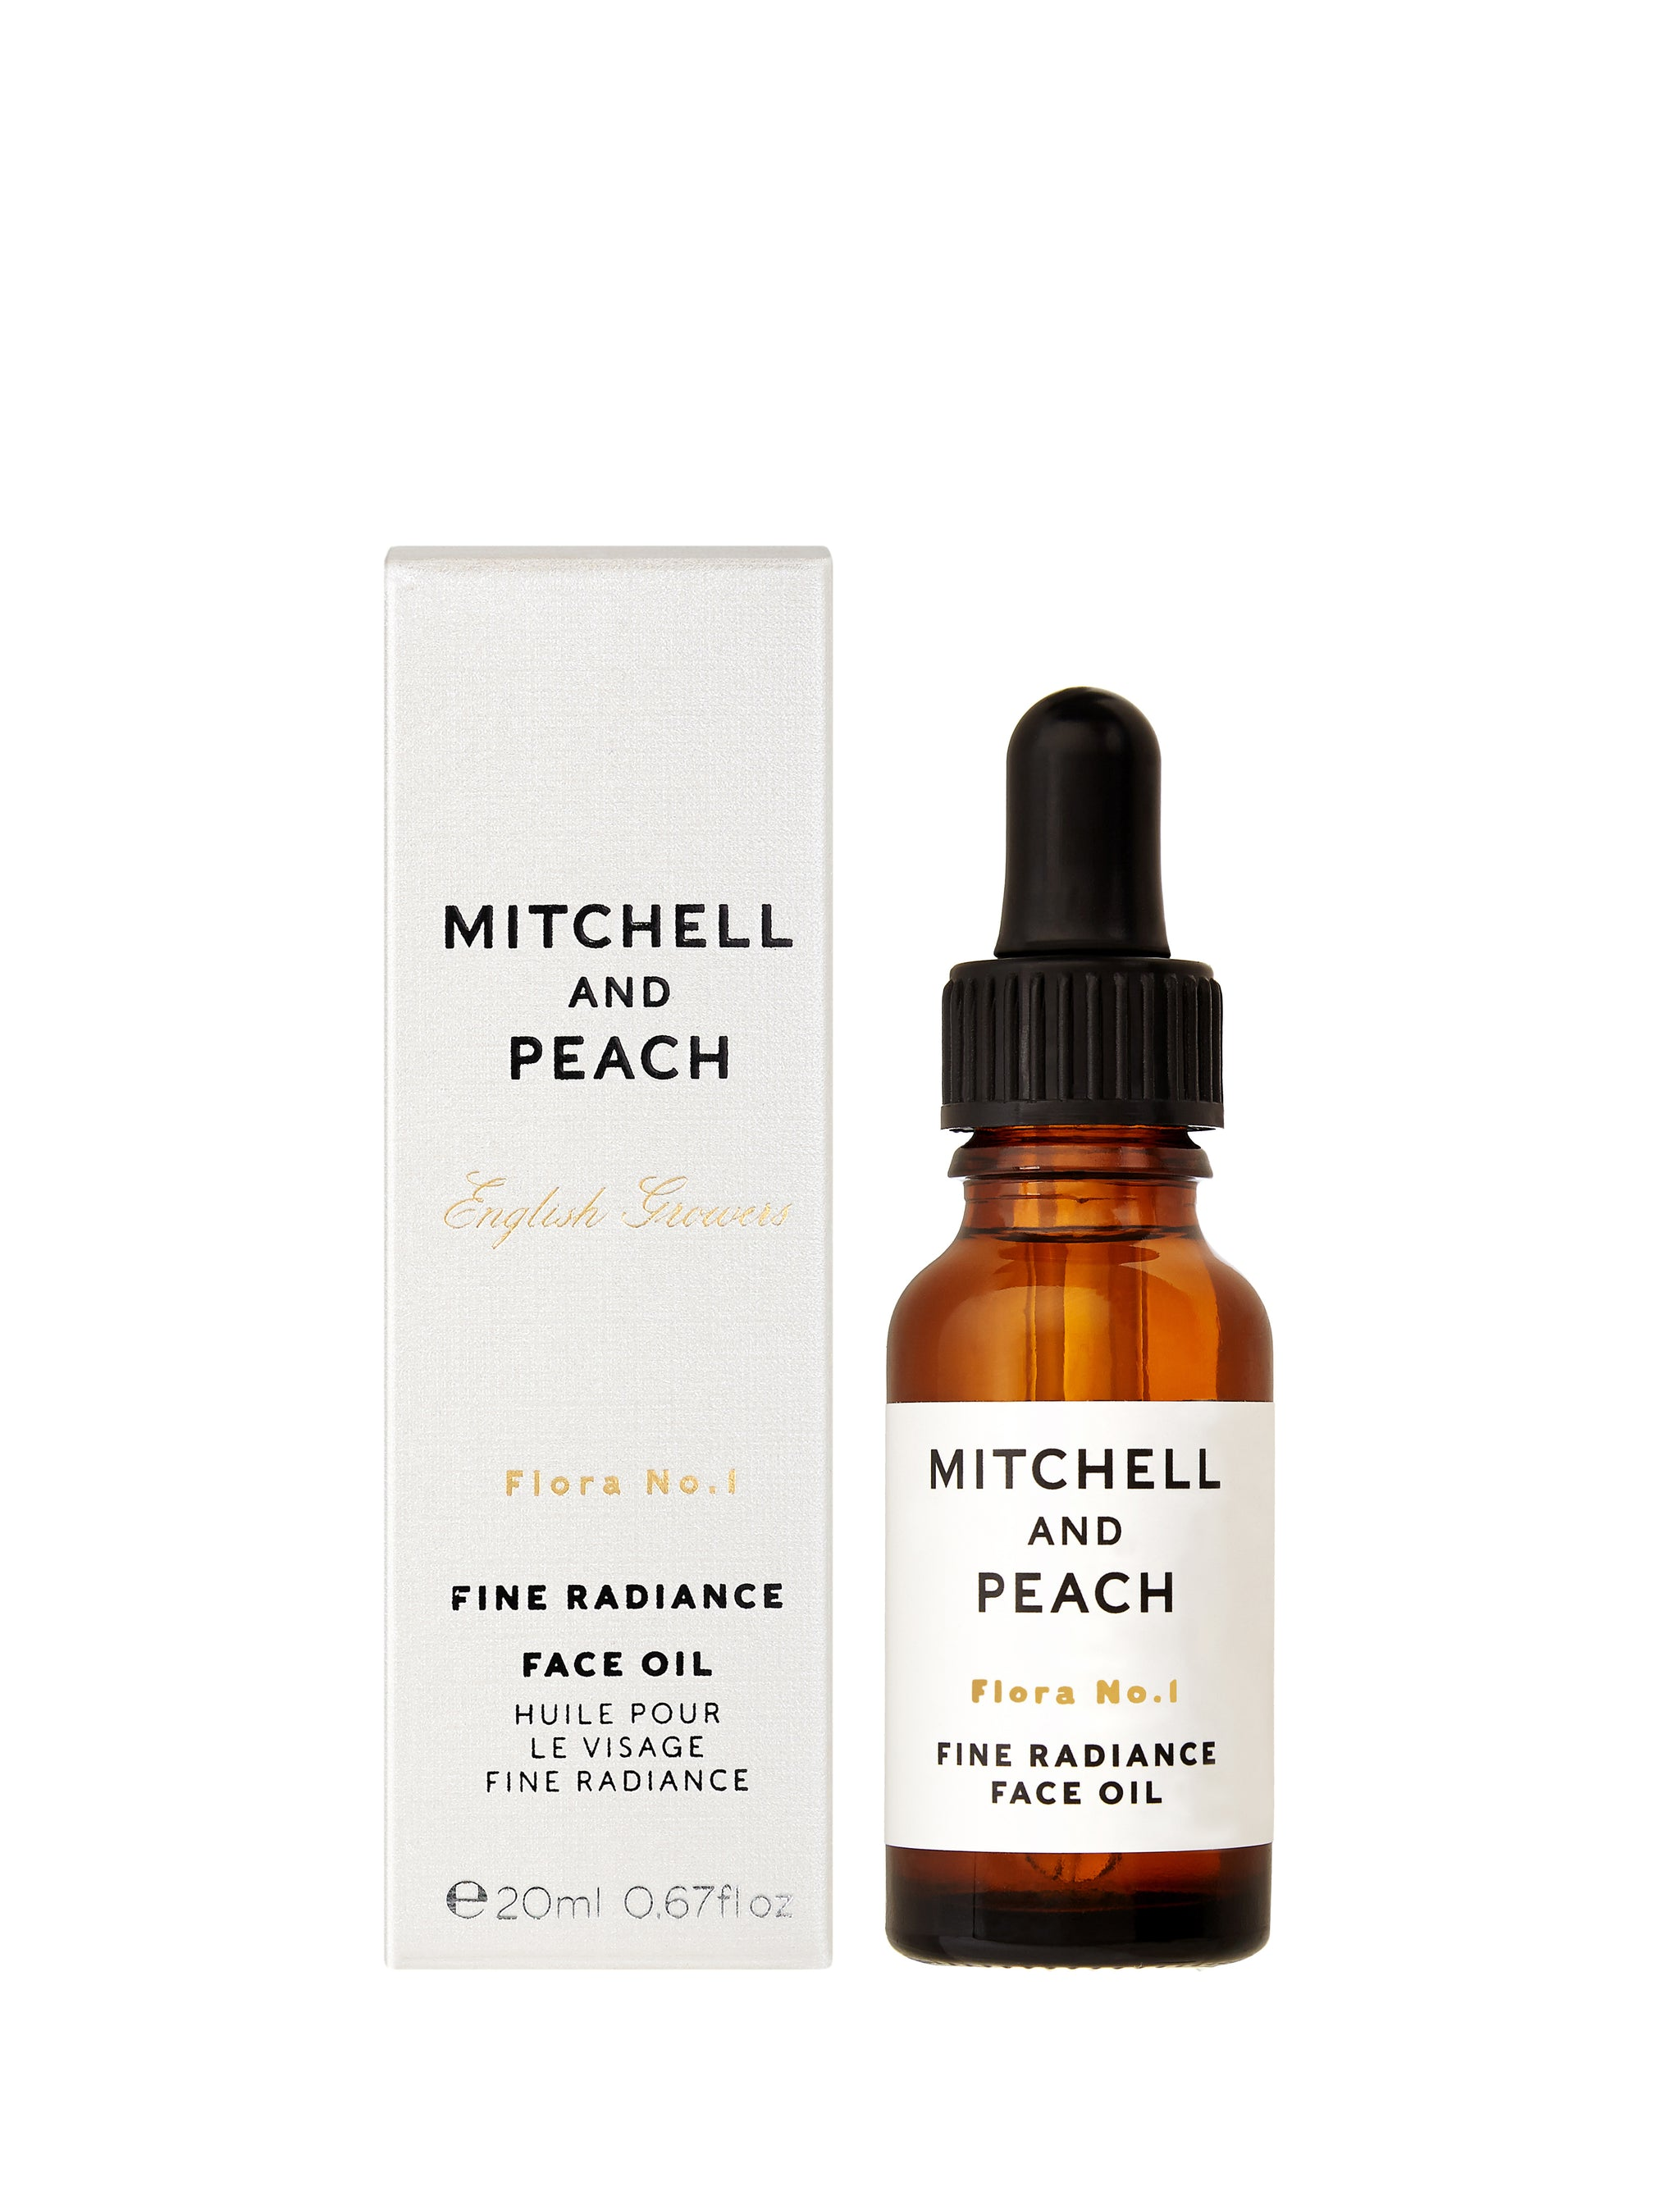 Mitchell and Peach - Flora No. 1 Fine Radiance Face Oil